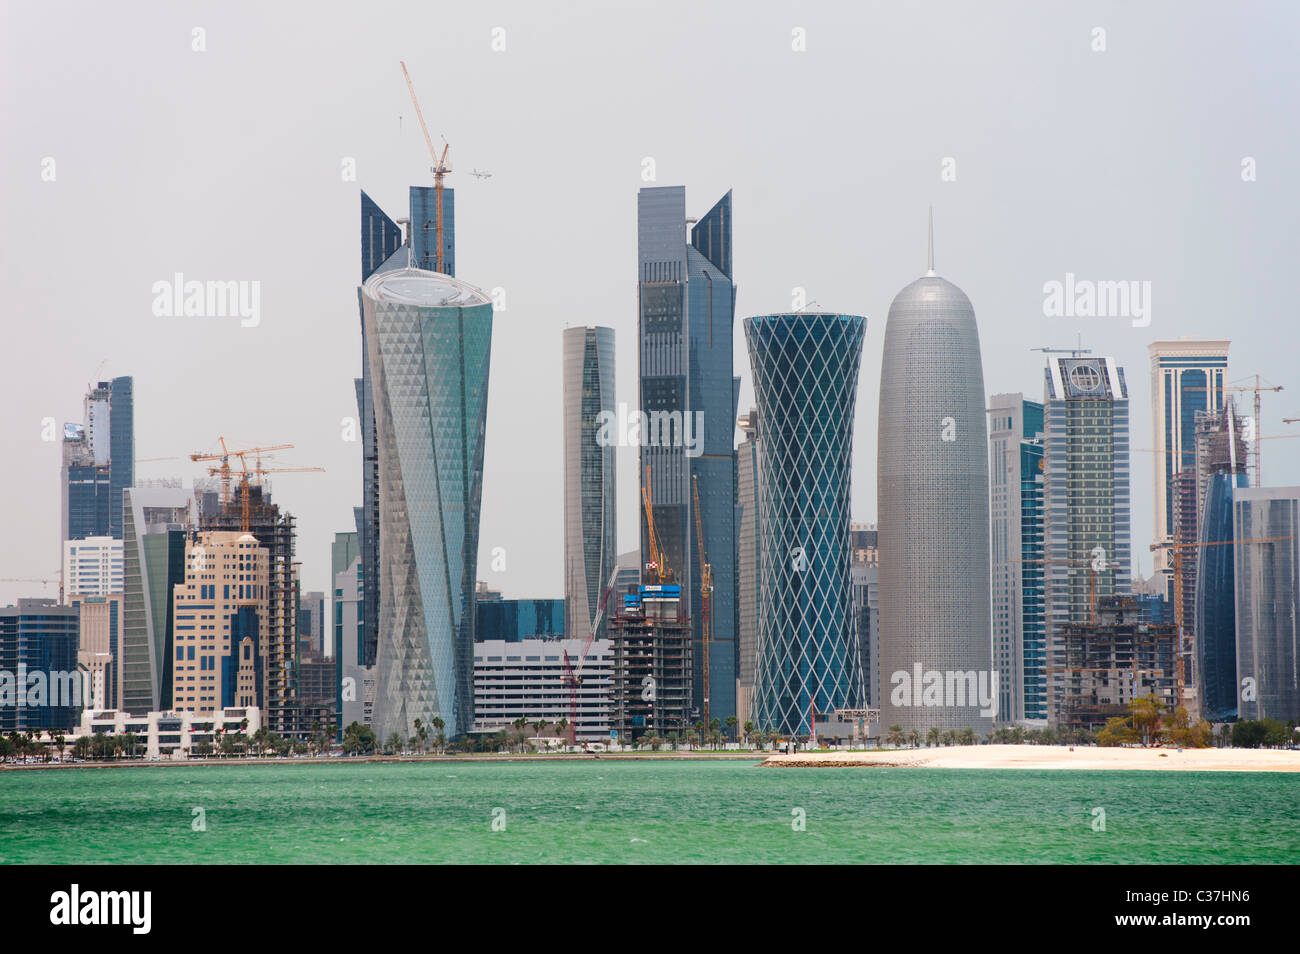 Modern high rise office towers form skyline of Doha in Qatar - Stock Image